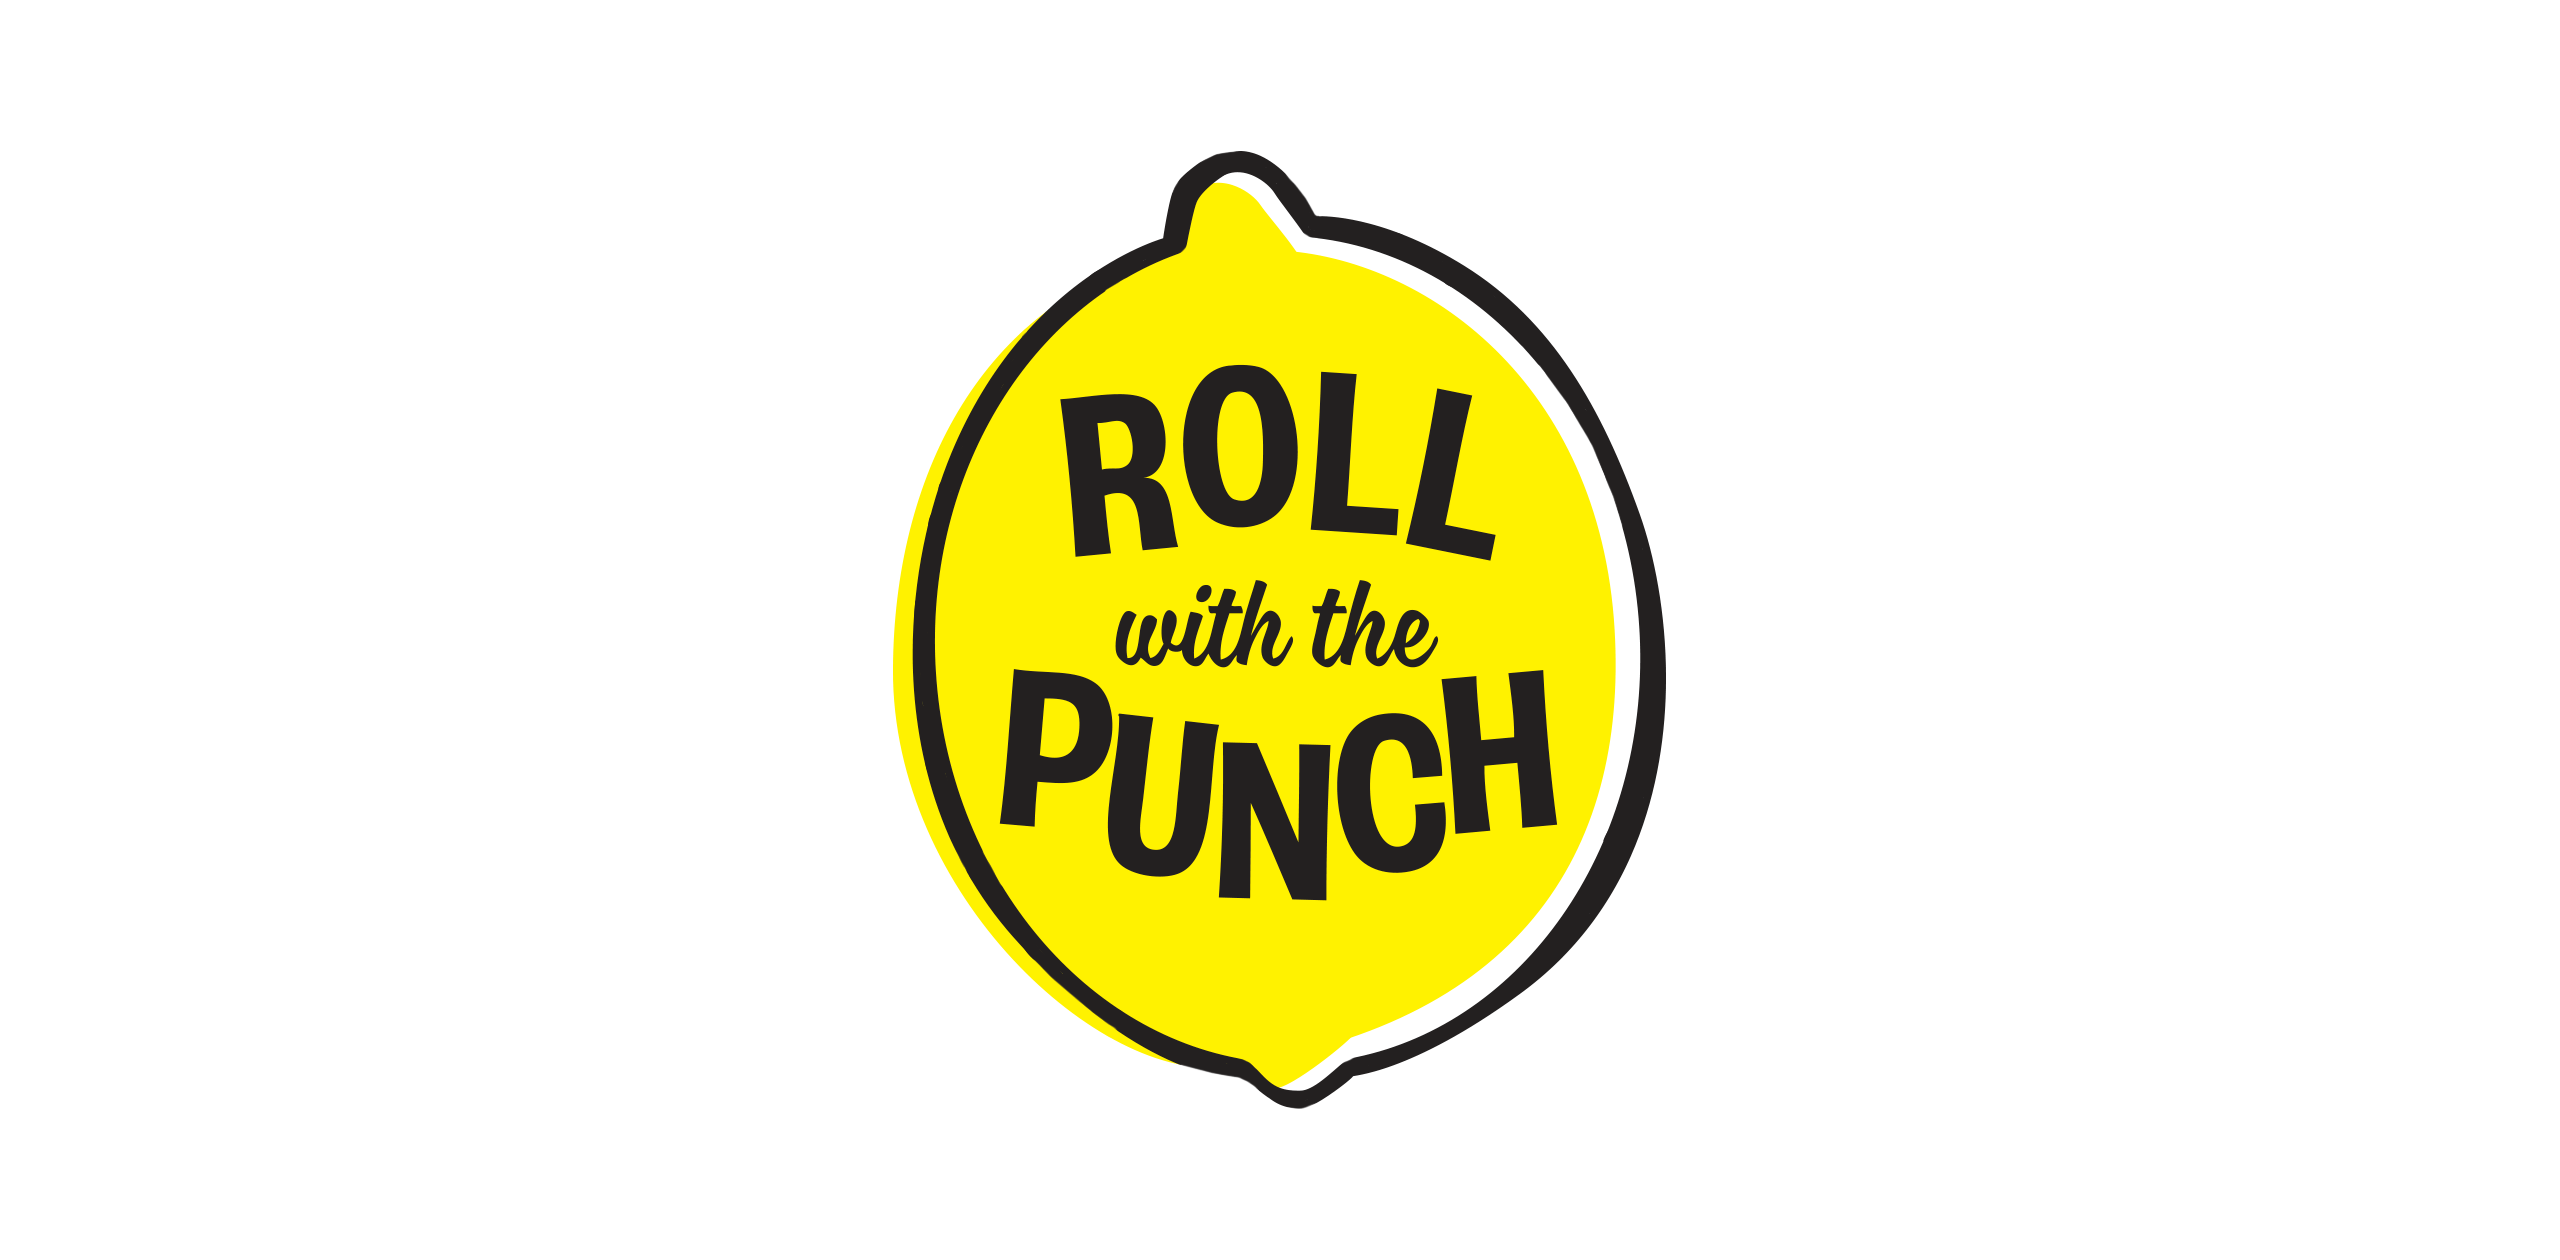 roll with the punch logo